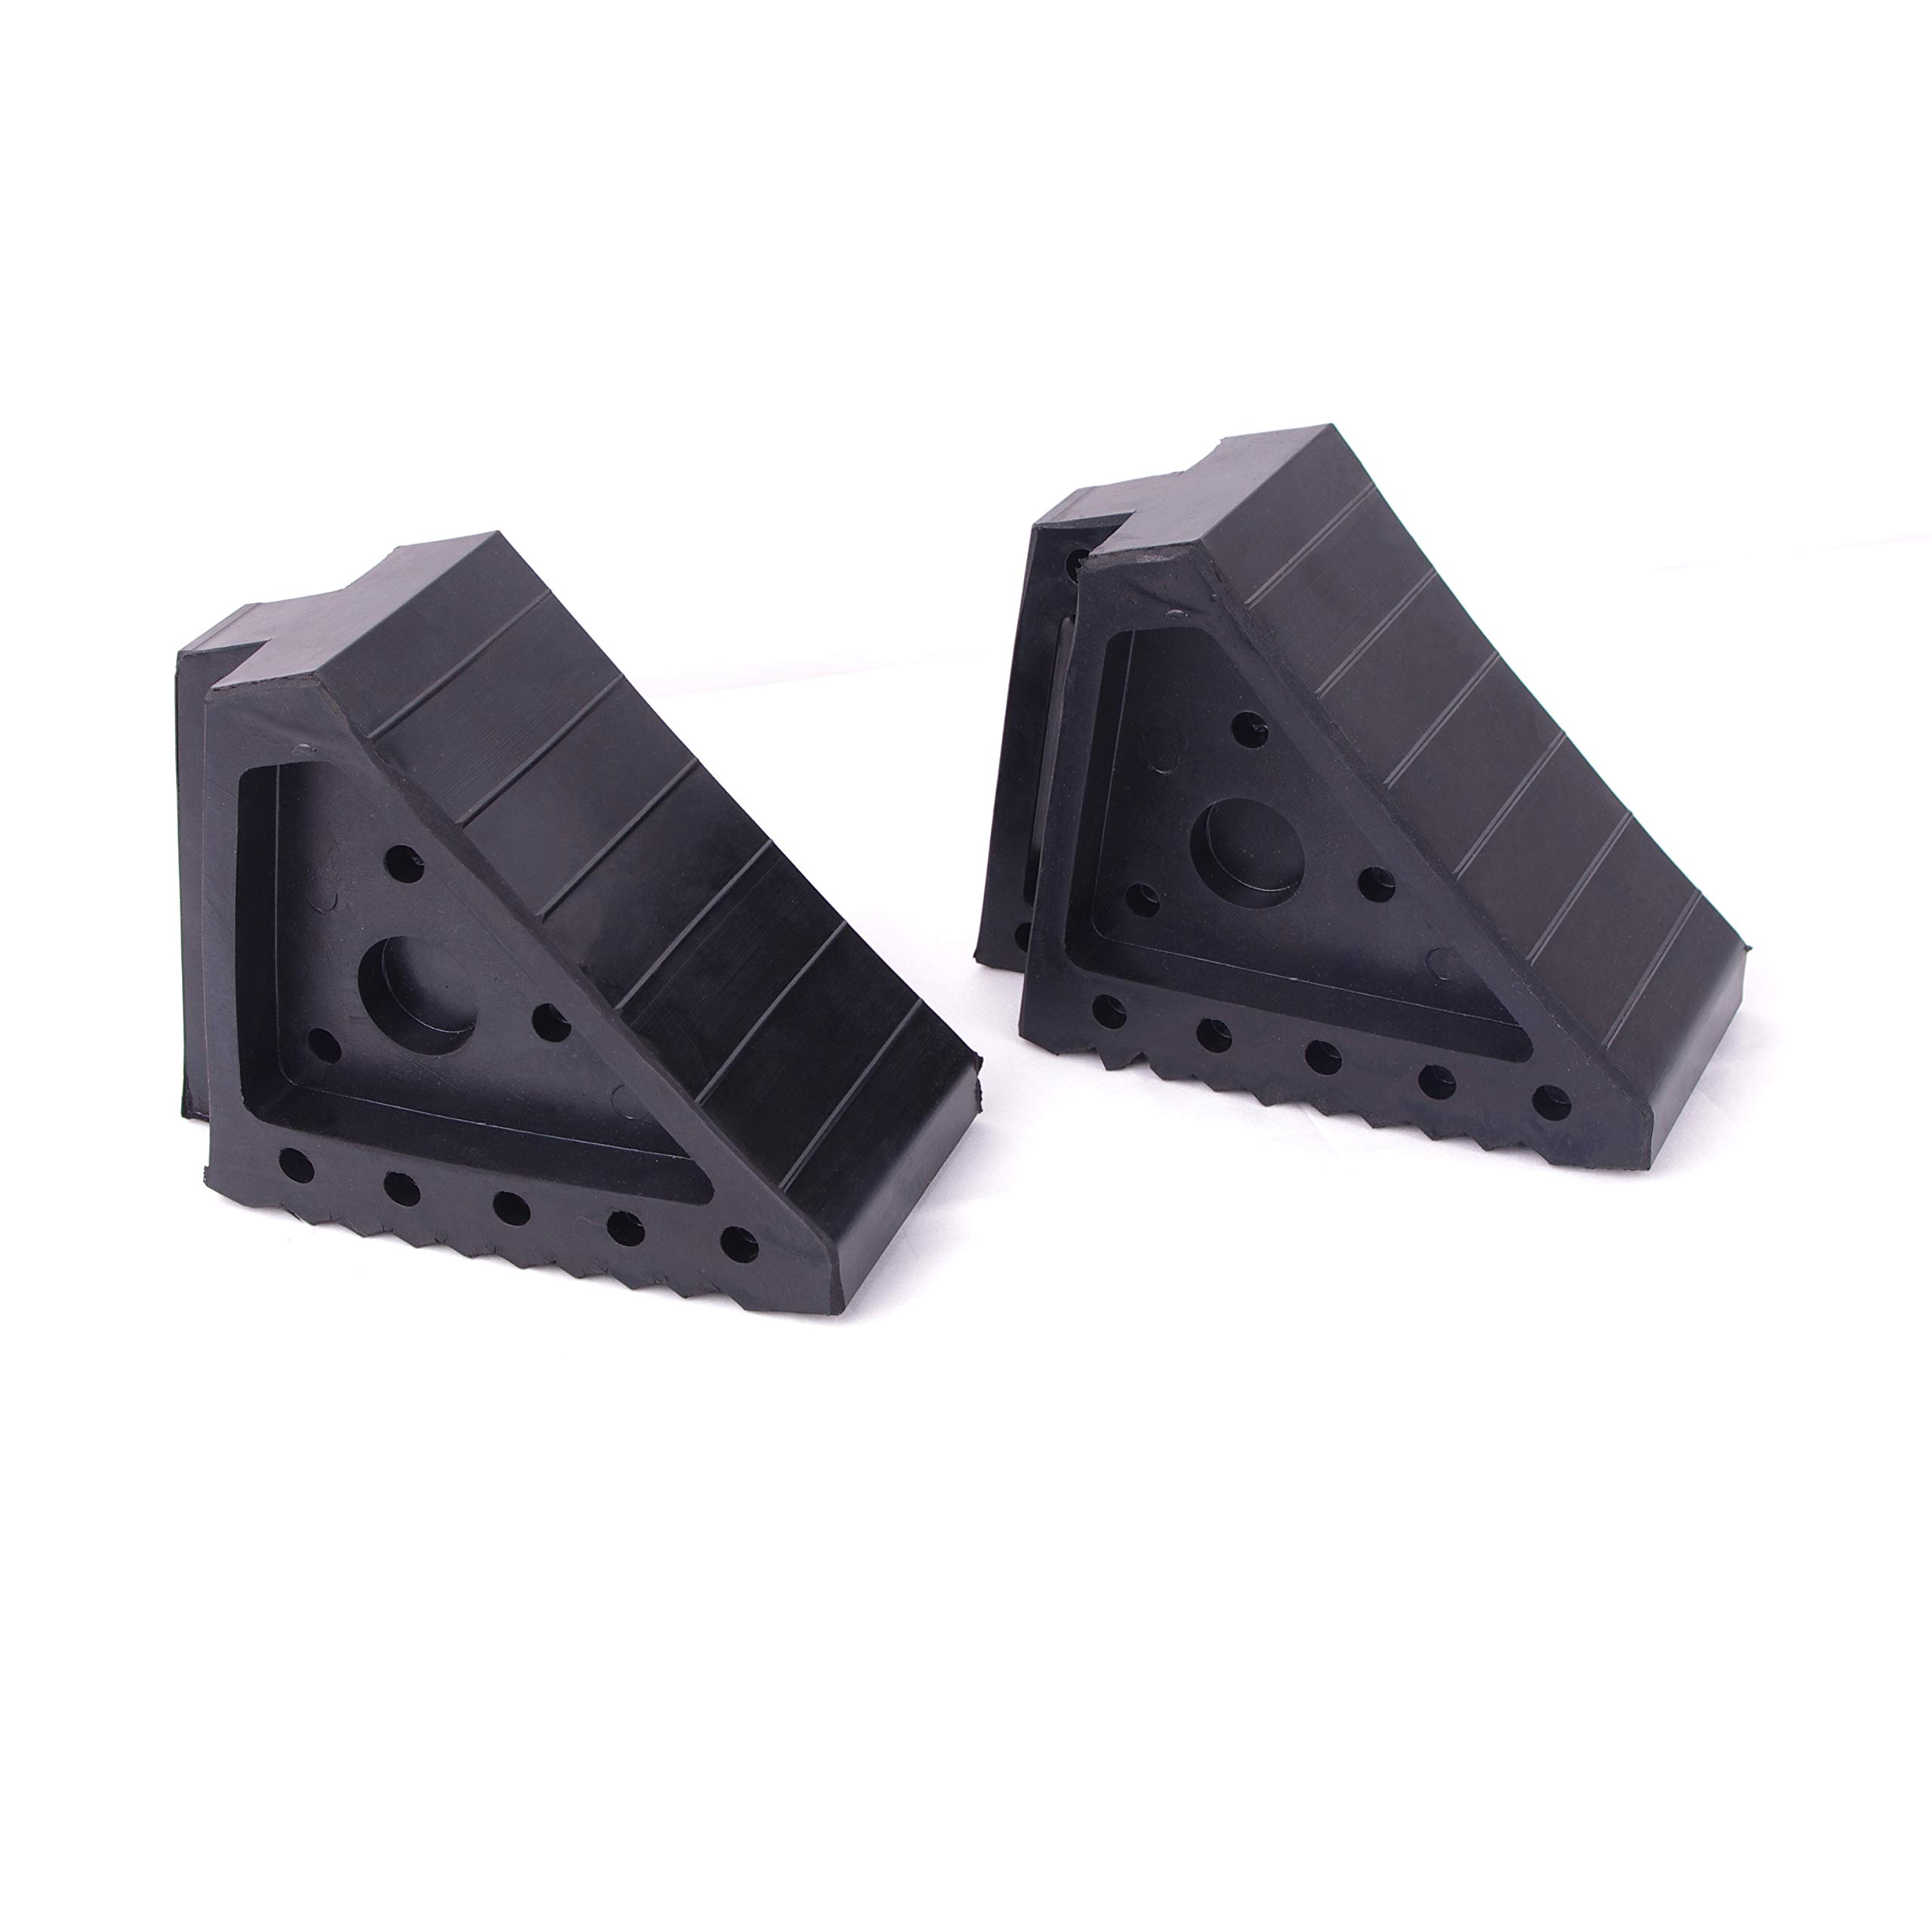 HIGOOD Solid Rubber Wheel Chock with Handle for The Car, Strong and Durable,8'' Length, 4'' Width, 6'' Height - Pack of 2 by HIGOOD